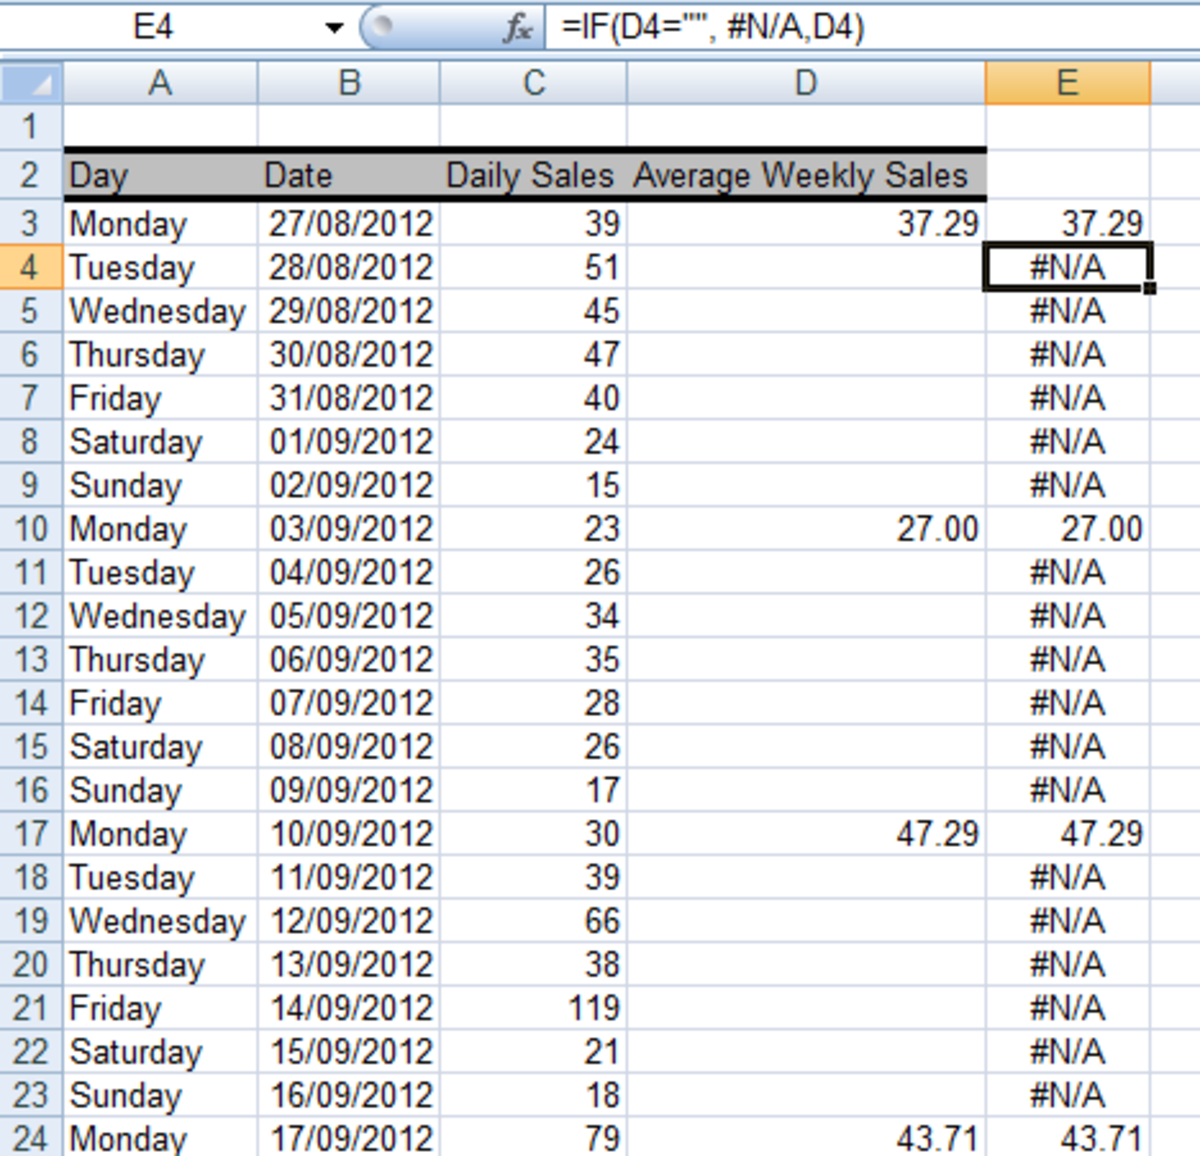 Ediblewildsus  Unique How To Get Excel  And  To Ignore Empty Cells In A Chart Or  With Great Using The If Function In A Formula To Convert Empty Cells To Na With Agreeable Subtracting Date And Time In Excel Also Least Square Regression Excel In Addition Export Active Directory To Excel And Excel Vba Dateserial As Well As Embedded Excel In Word Additionally Interpolation Formula In Excel From Turbofuturecom With Ediblewildsus  Great How To Get Excel  And  To Ignore Empty Cells In A Chart Or  With Agreeable Using The If Function In A Formula To Convert Empty Cells To Na And Unique Subtracting Date And Time In Excel Also Least Square Regression Excel In Addition Export Active Directory To Excel From Turbofuturecom